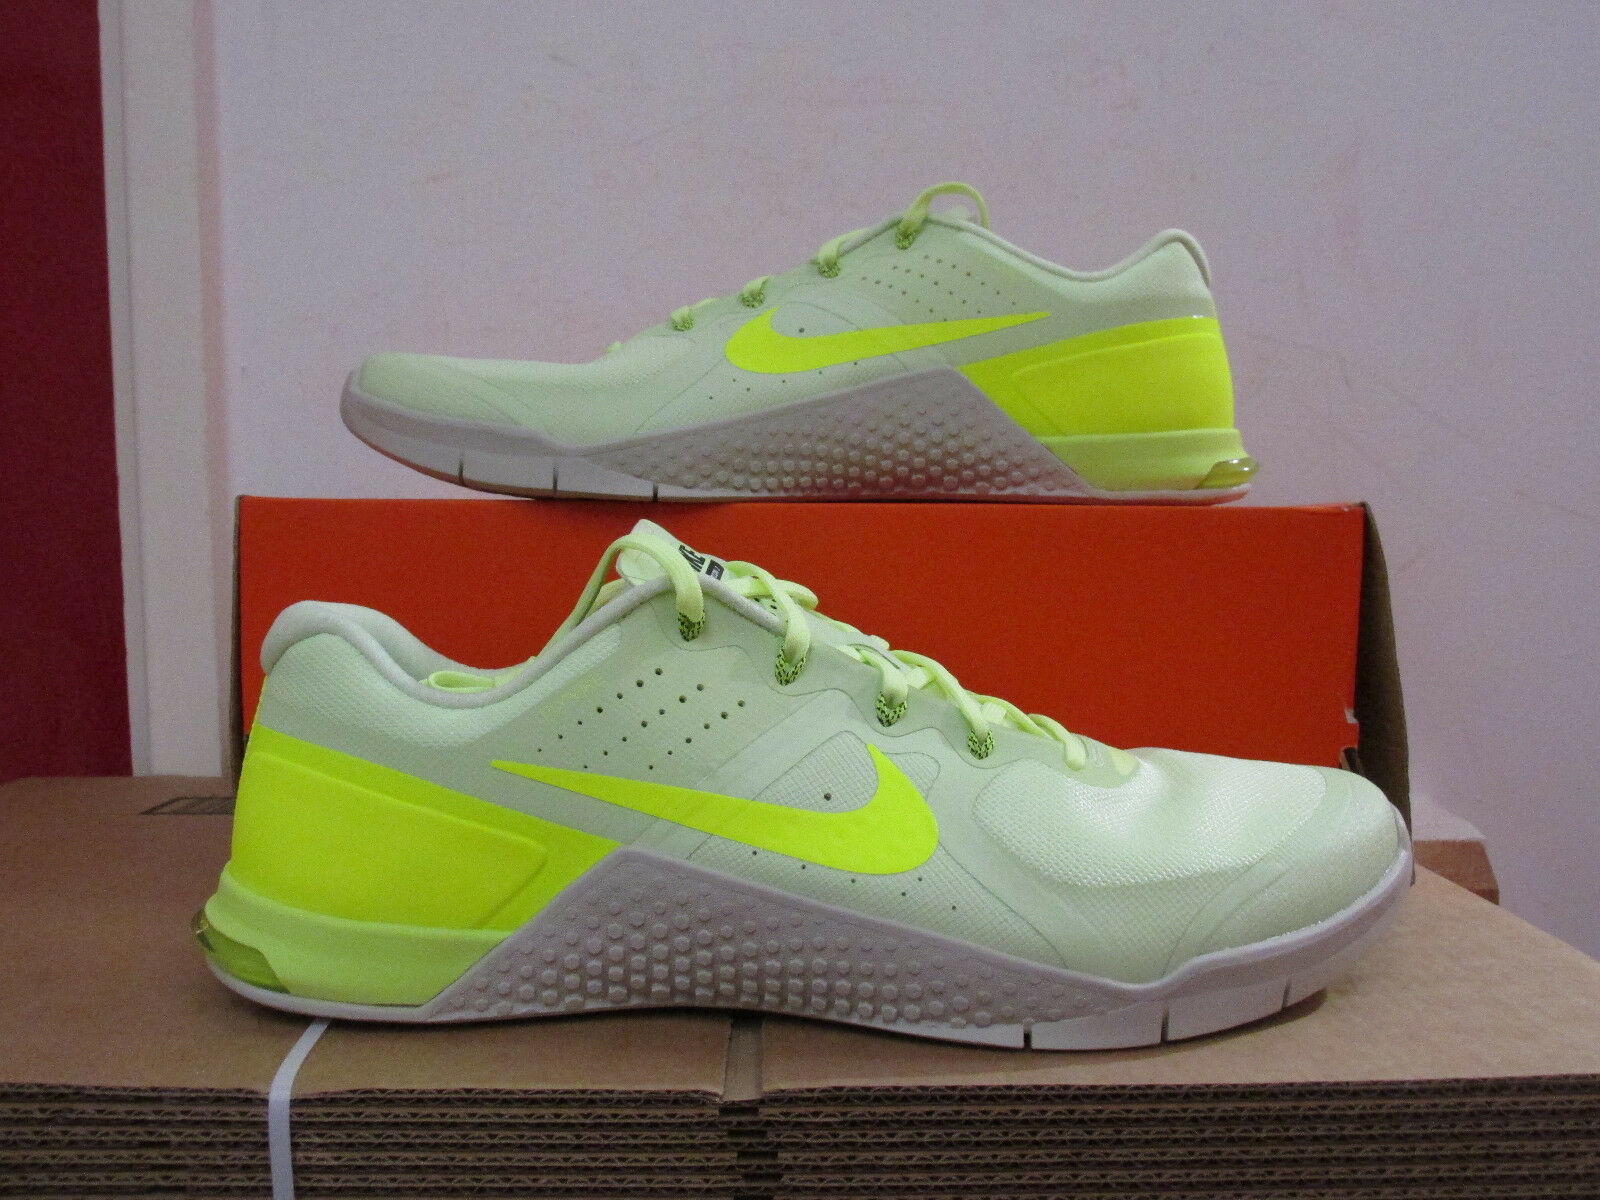 nike metcon 2 mens running trainers 819899 700 sneakers shoes CLEARANCE